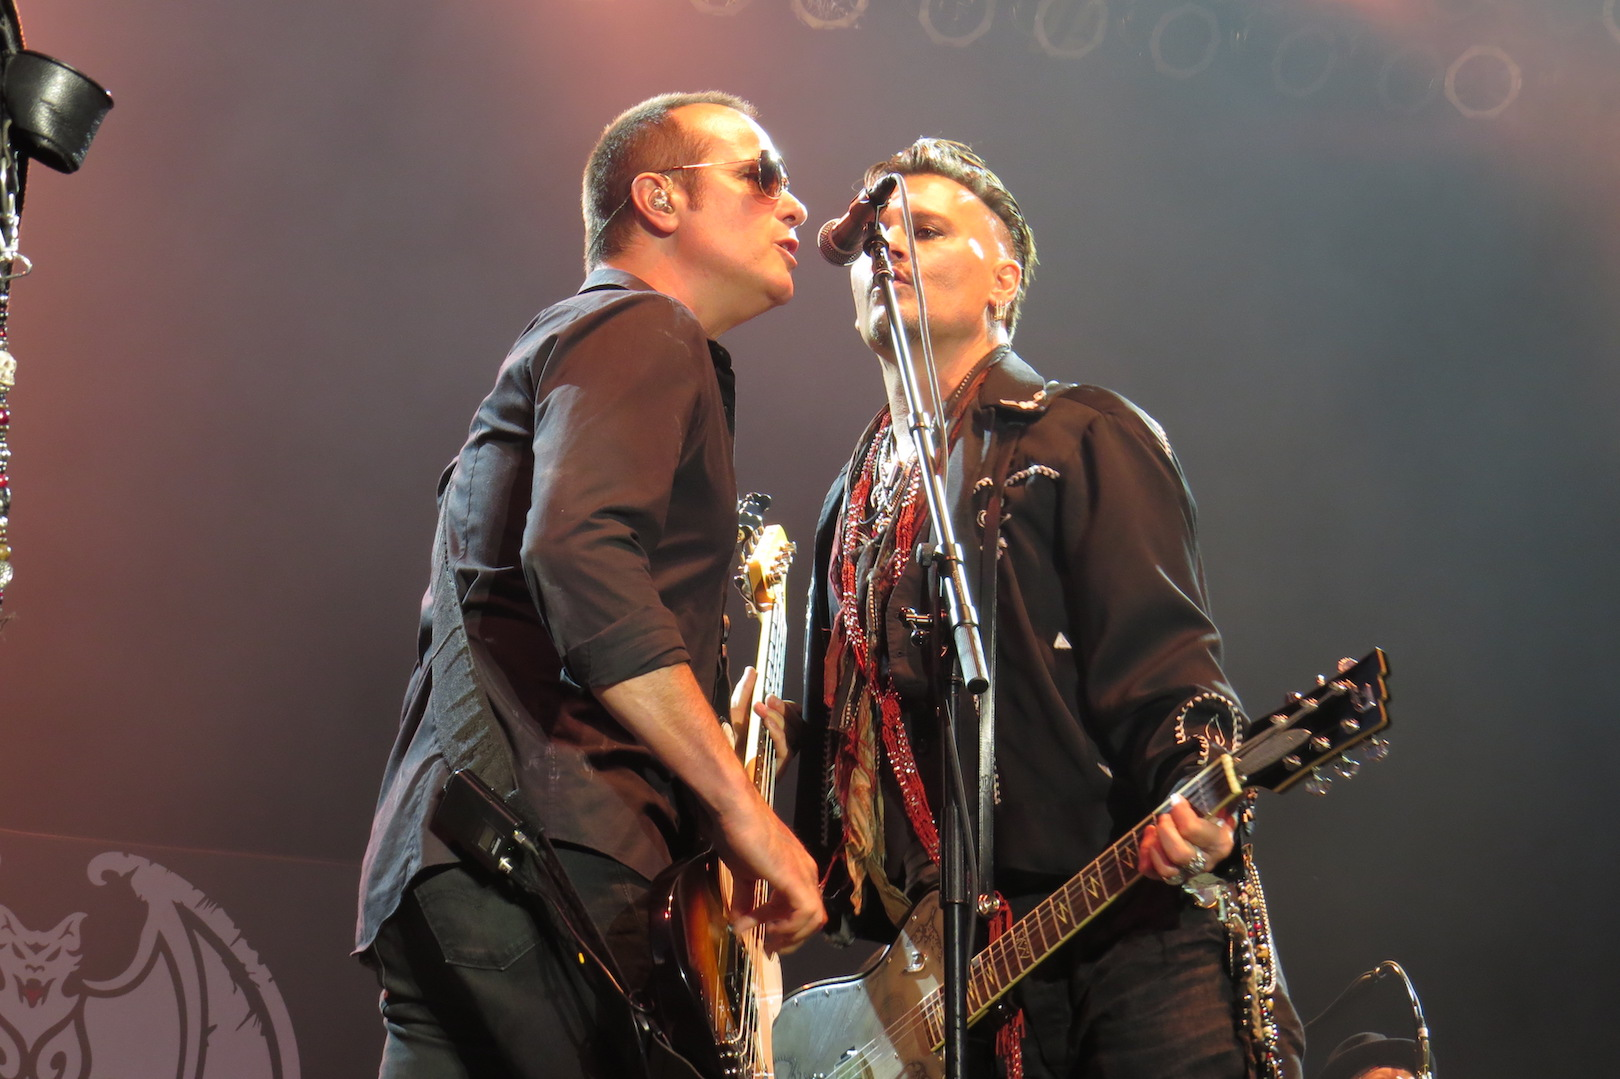 Robert DeLeo and Johnny Depp